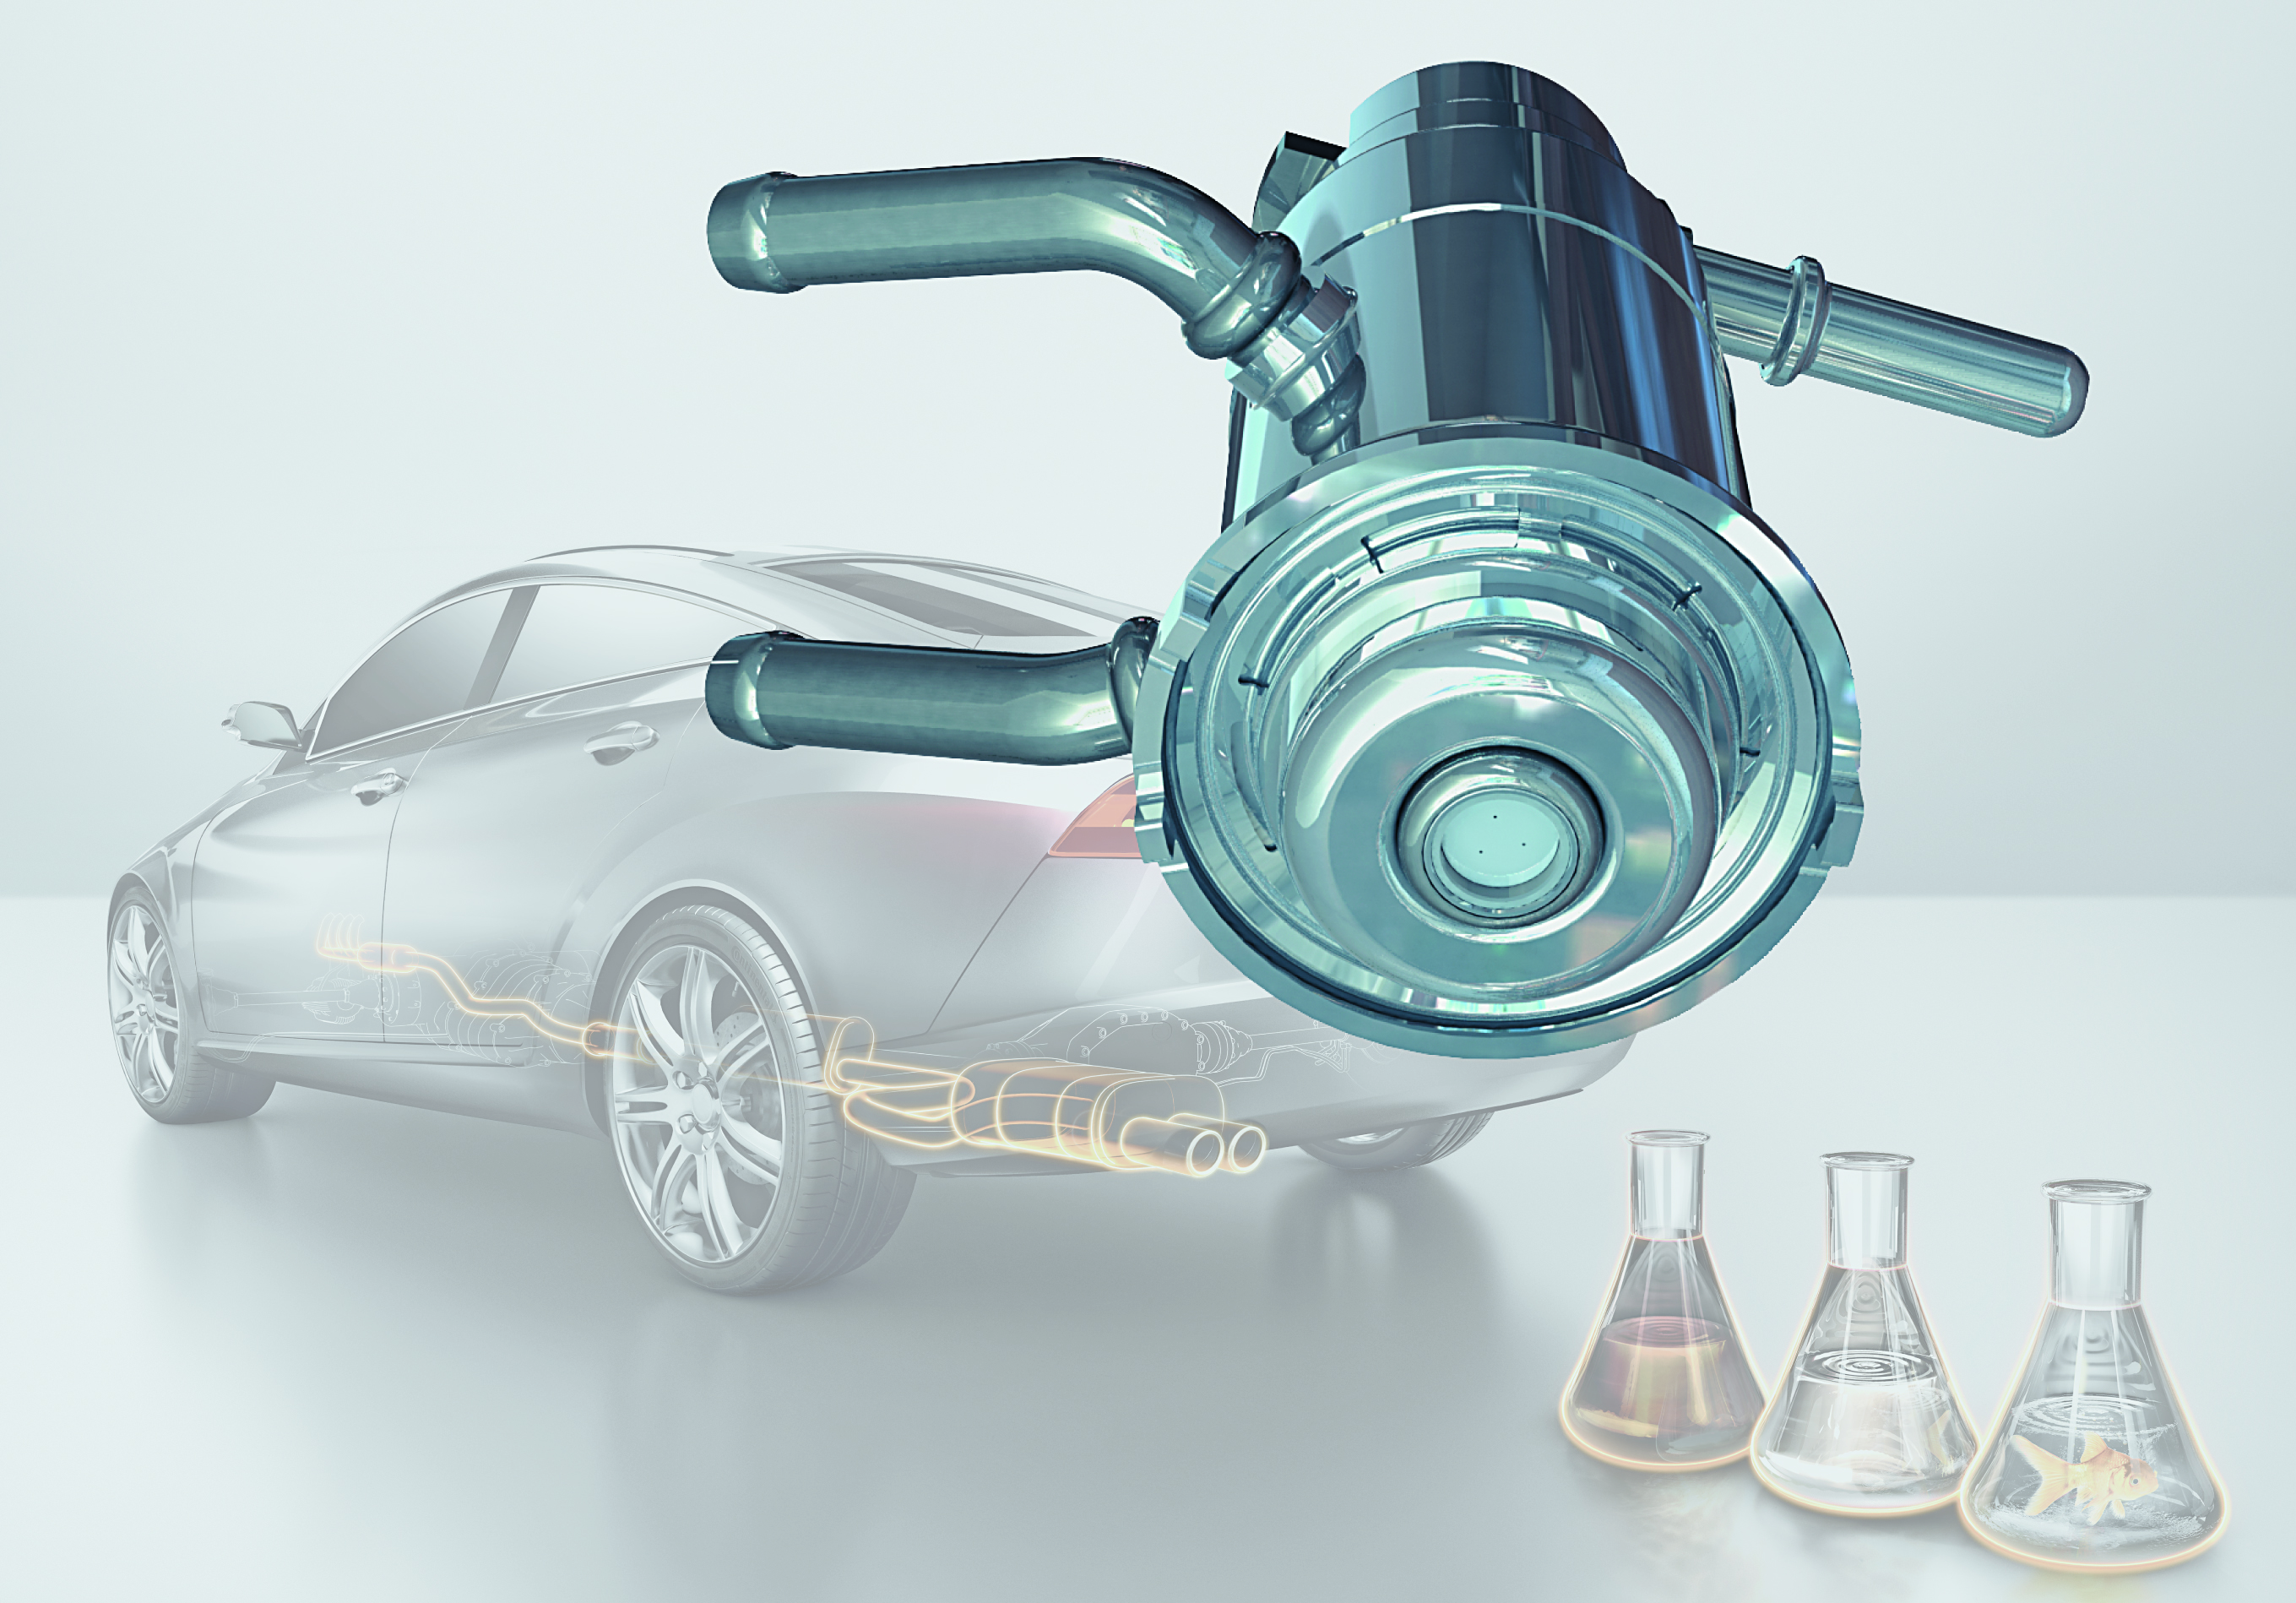 Water-cooled AdBlue® injection valve by Continental